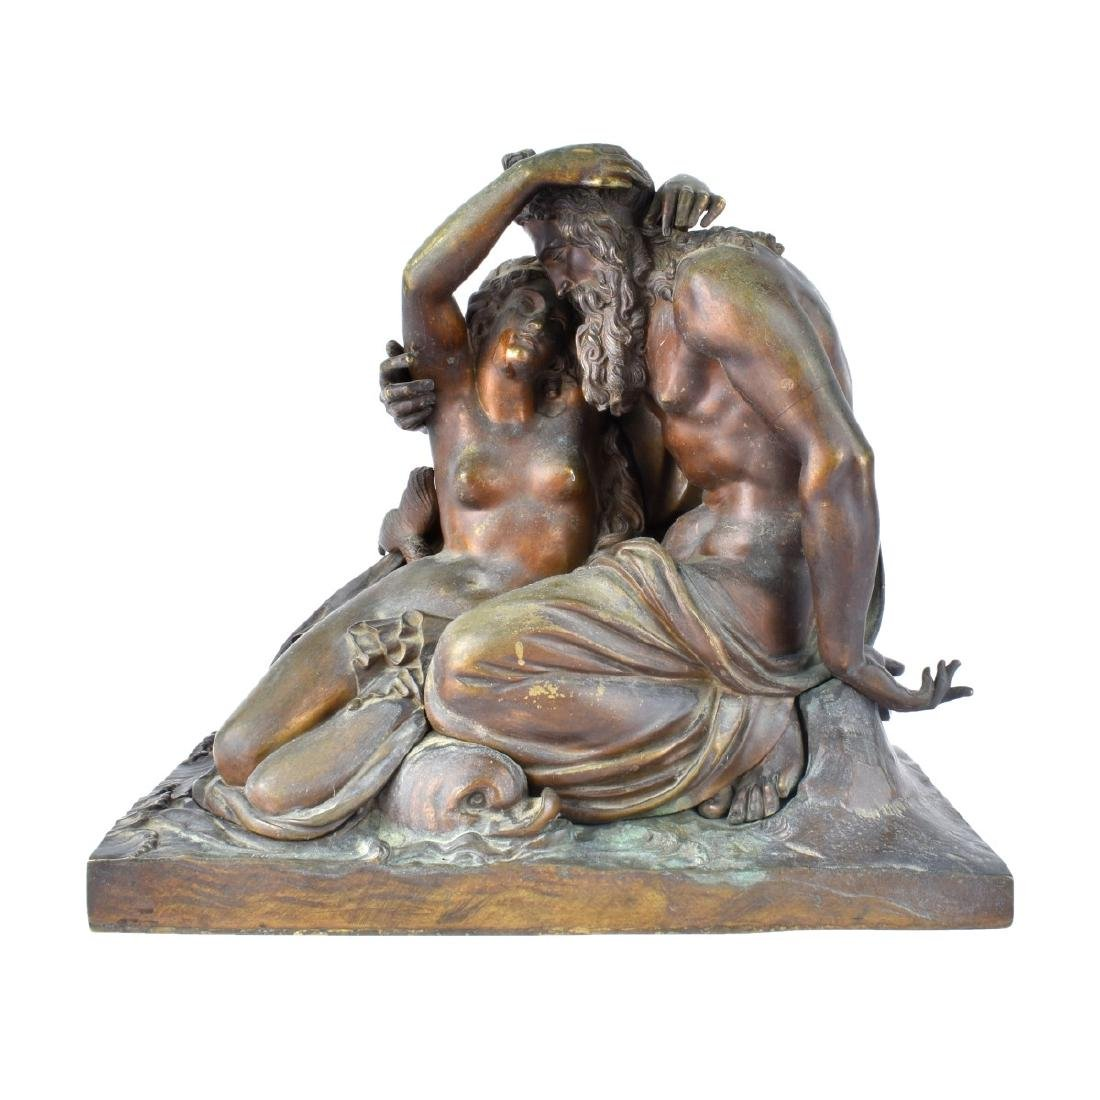 19th Century Neoclassical Bronze Sculpture